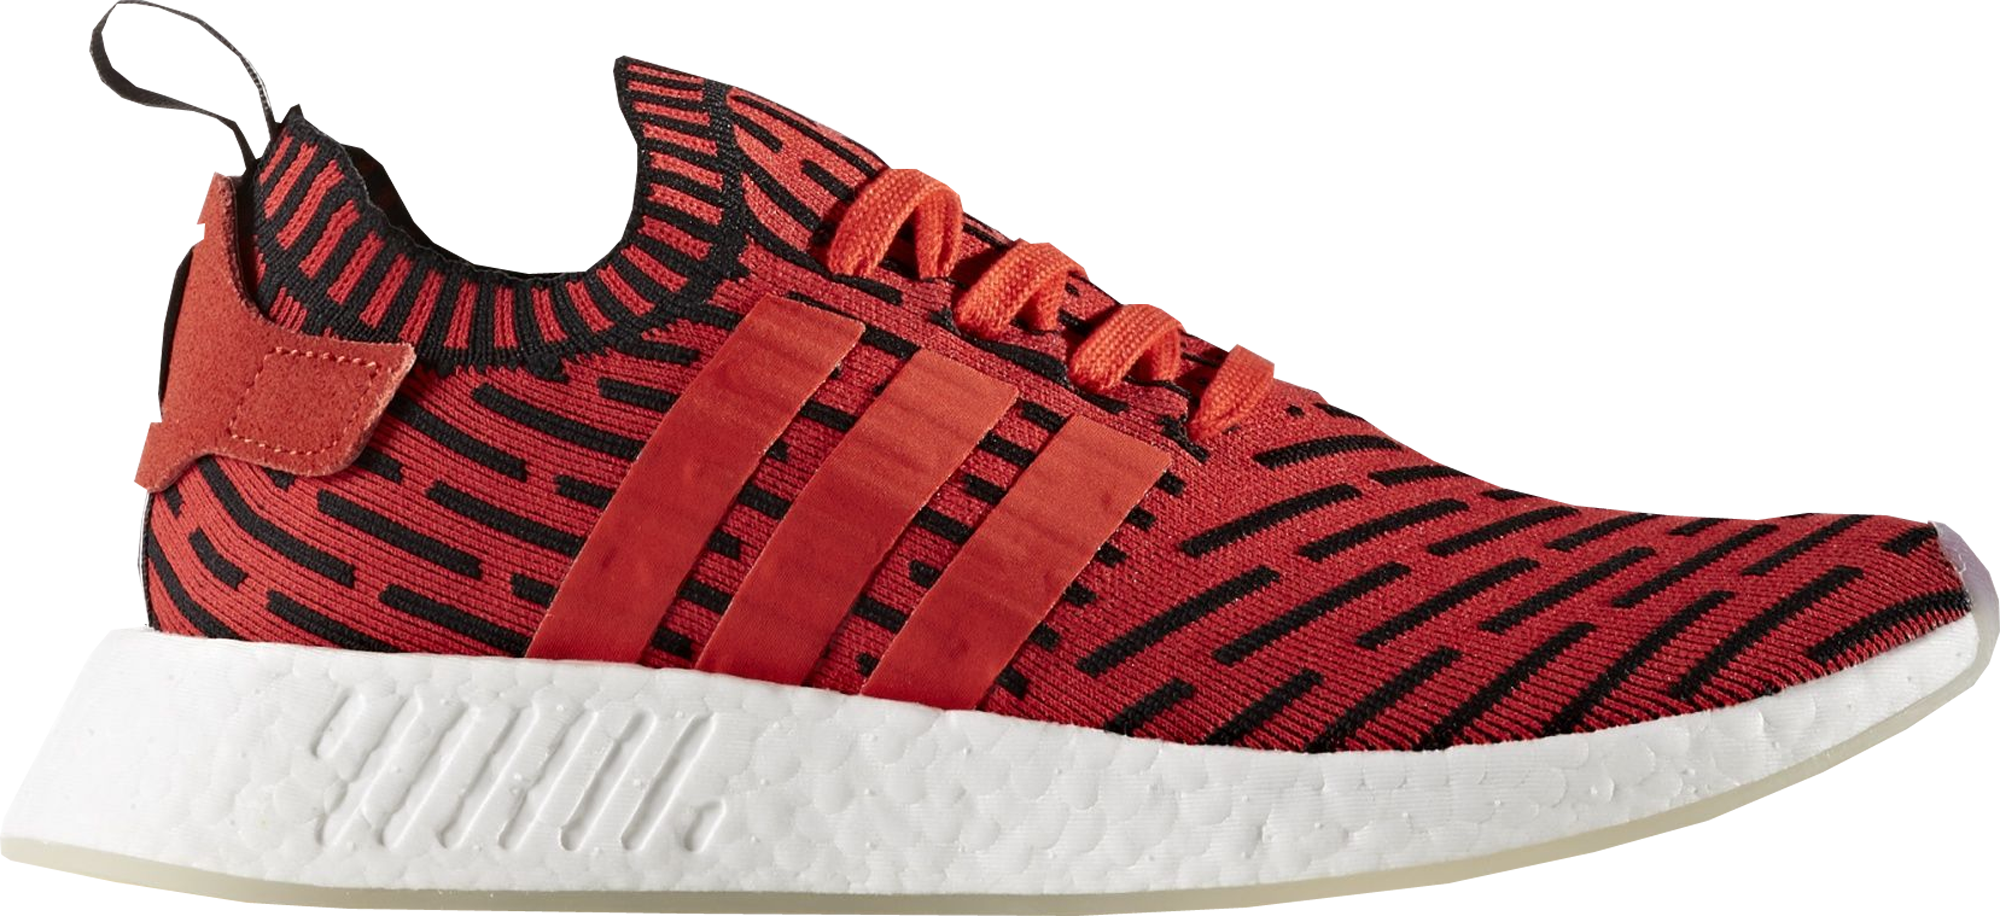 adidas Debuts Two New NMD R2 Primeknit Colorways for the fairer